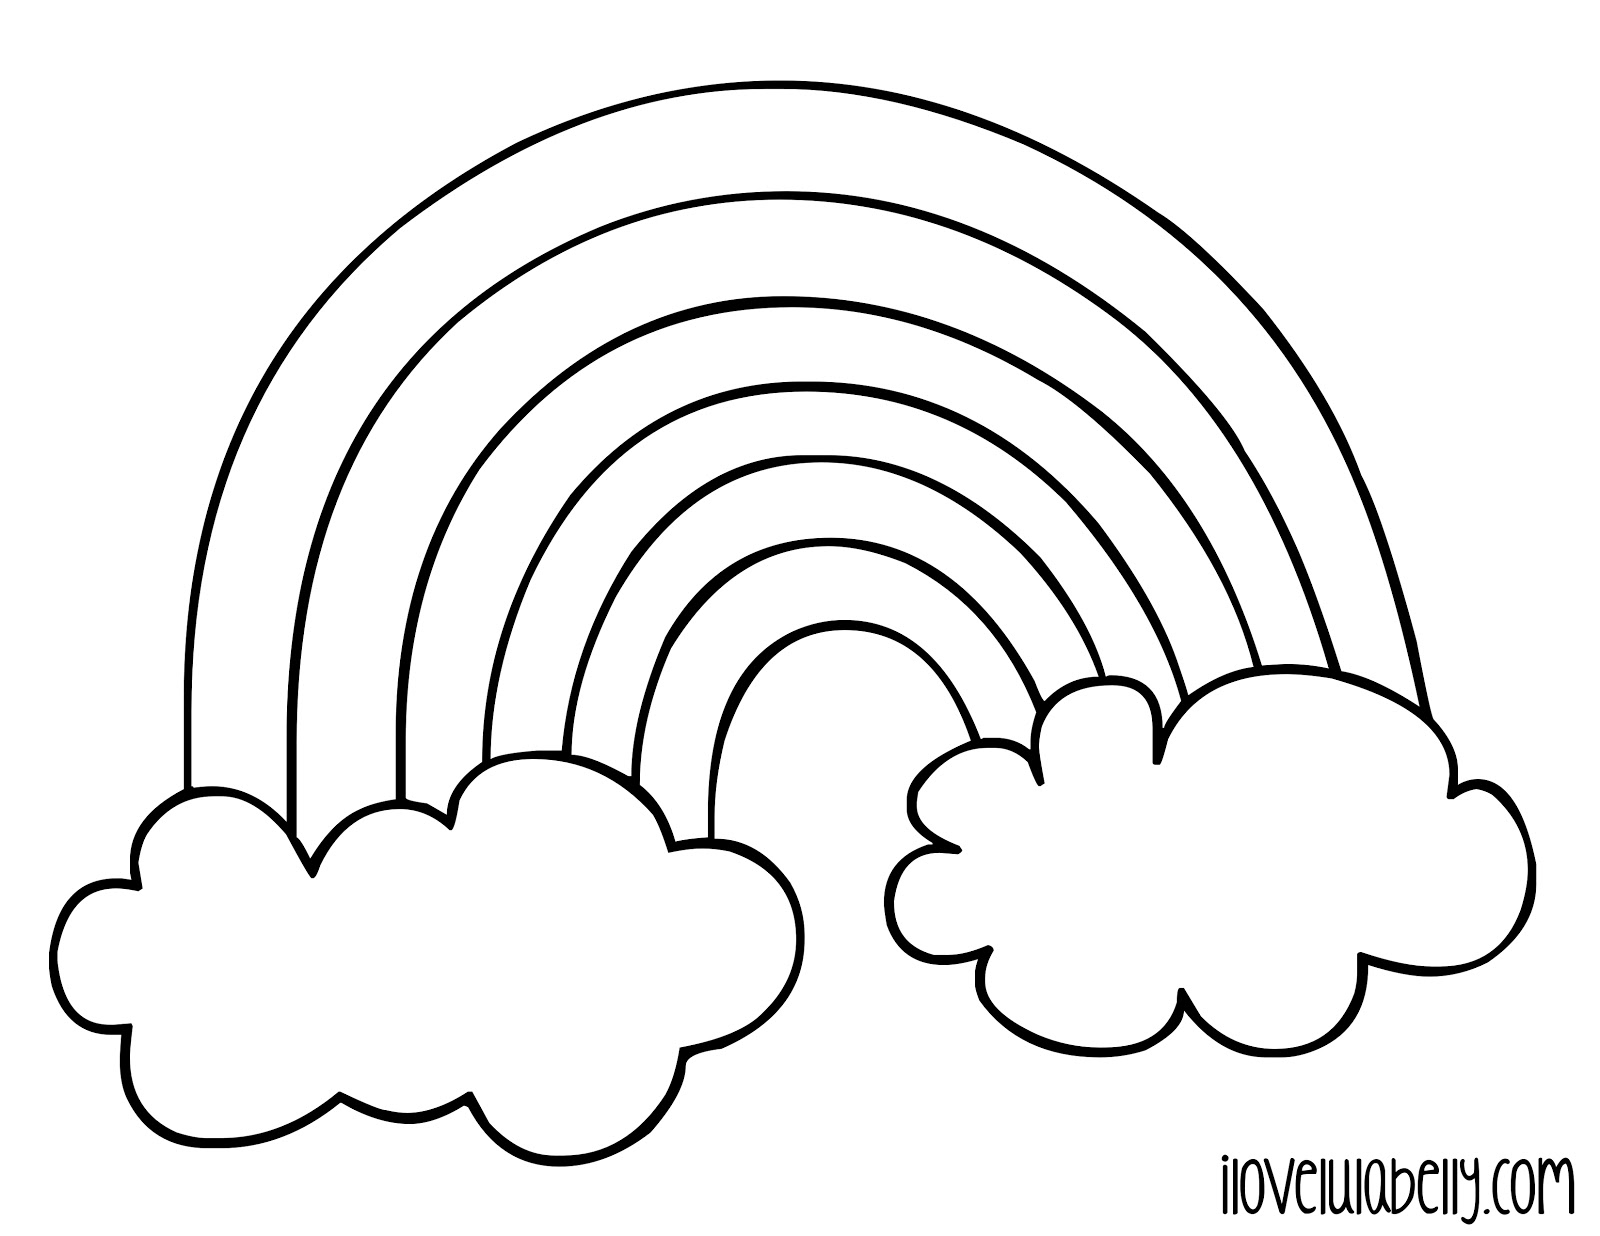 Rainbow Coloring Page | Free download on ClipArtMag